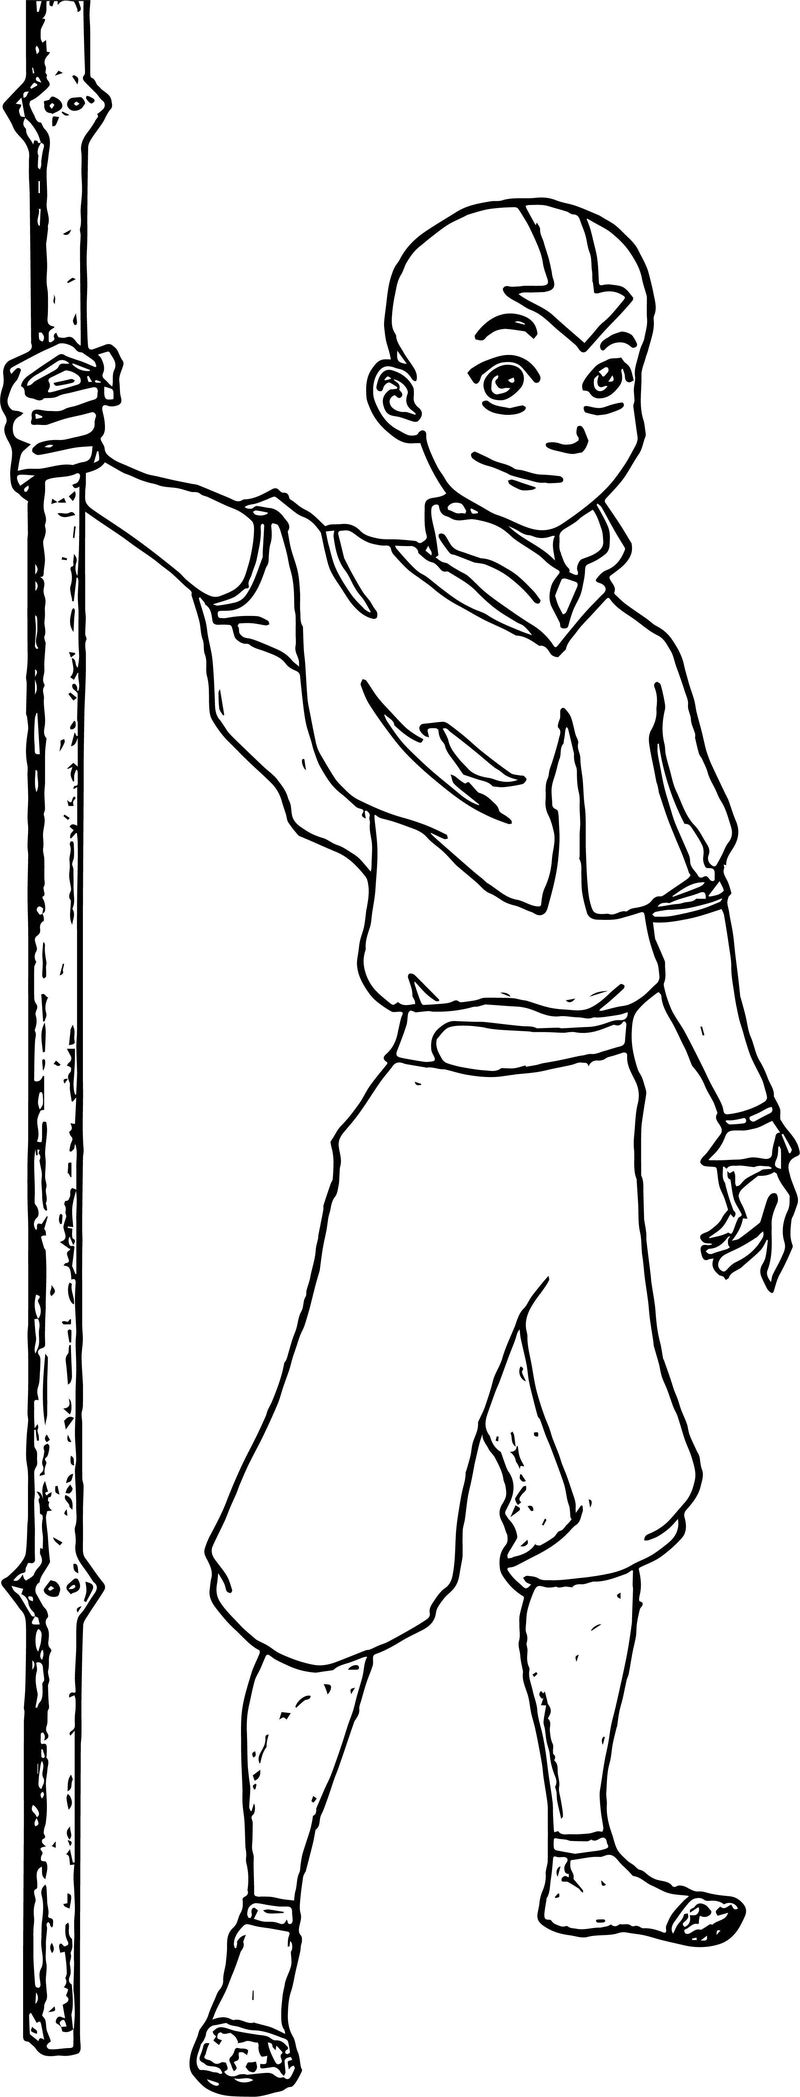 Aang The Avatar From Avatar The Last Airbender Ruthmohan Avatar Aang Coloring Page